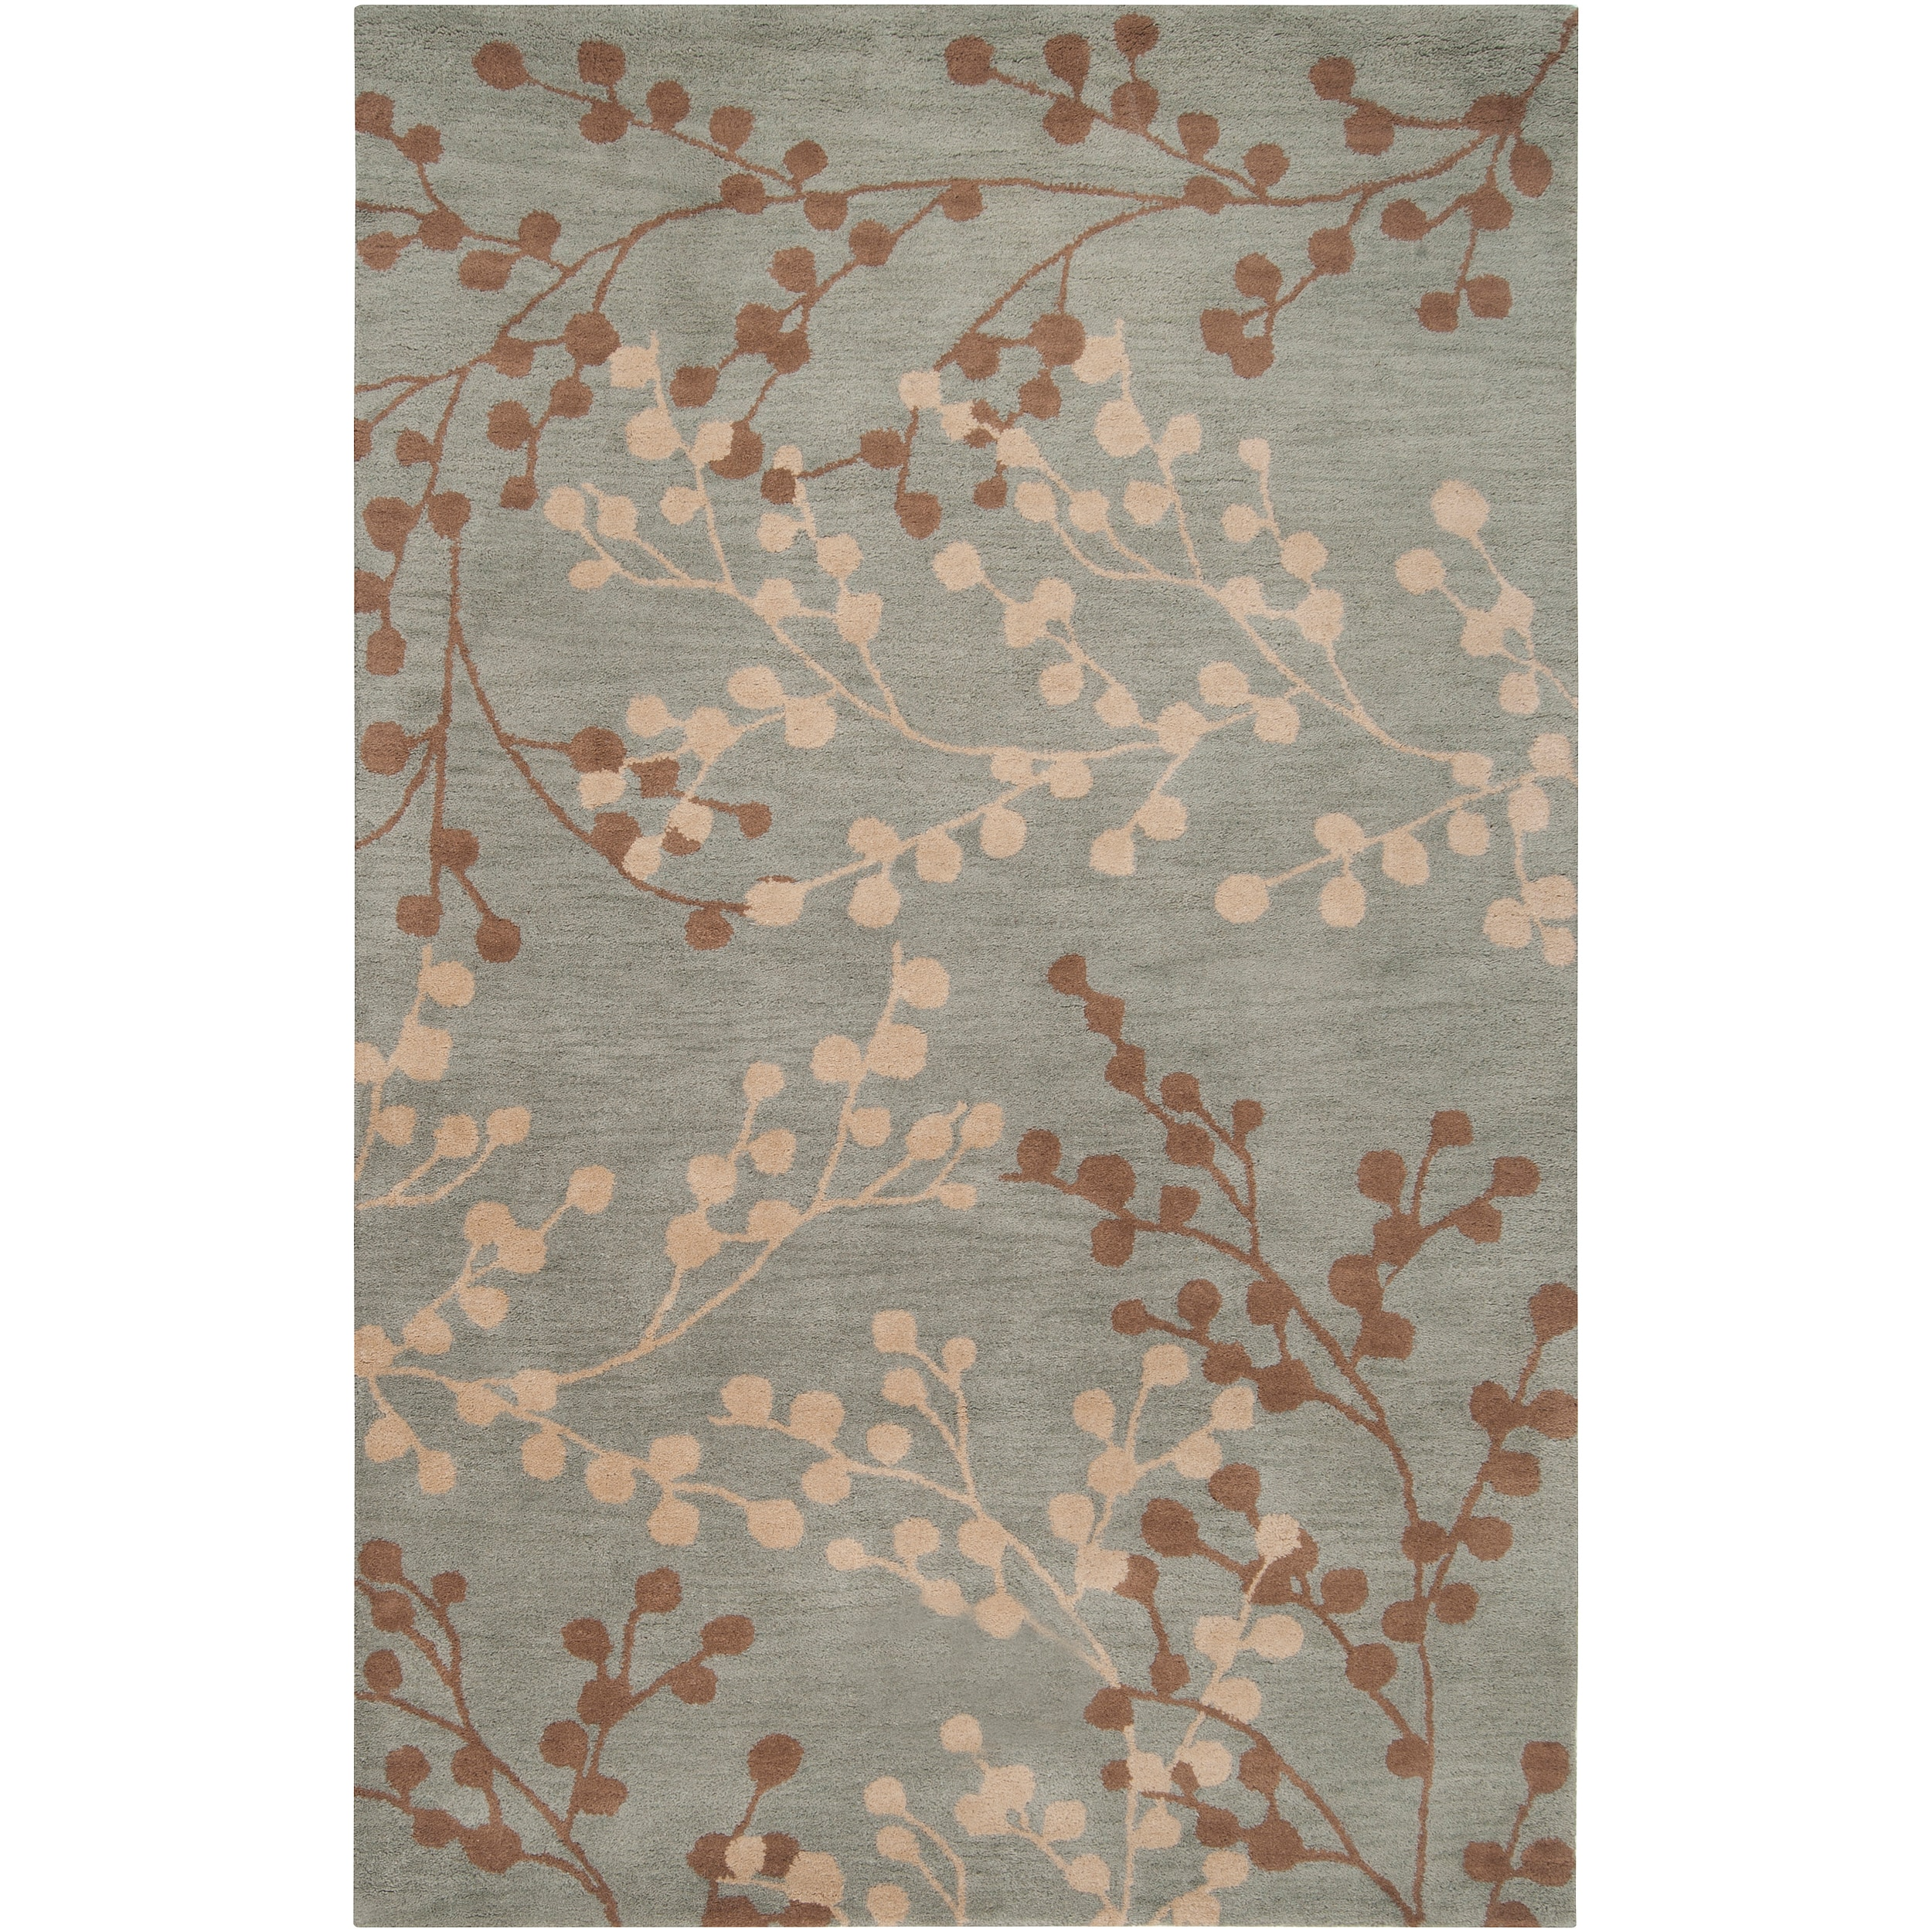 Hand-tufted Blossom Blue Wool Rug (3'6 x 5'6)